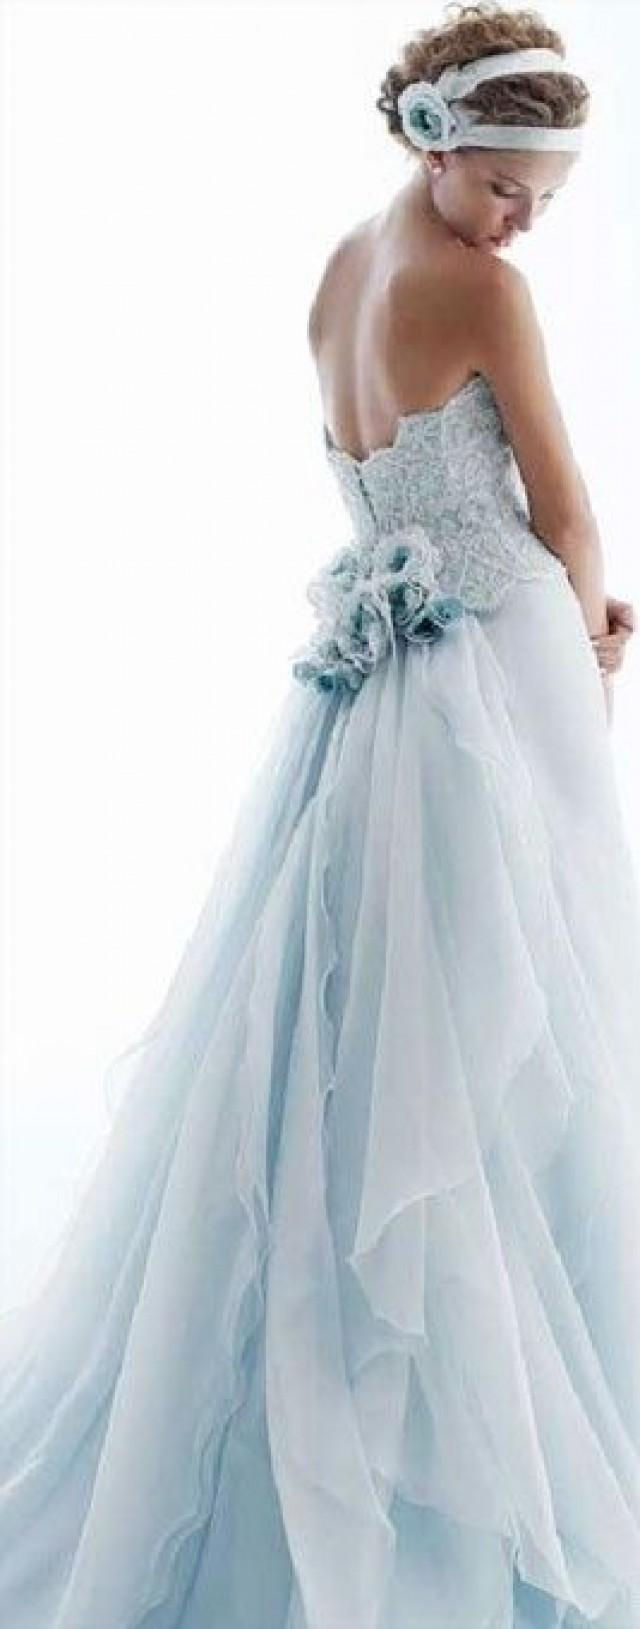 Dress say yes to the dress 2274667 weddbook for Ice blue wedding dress